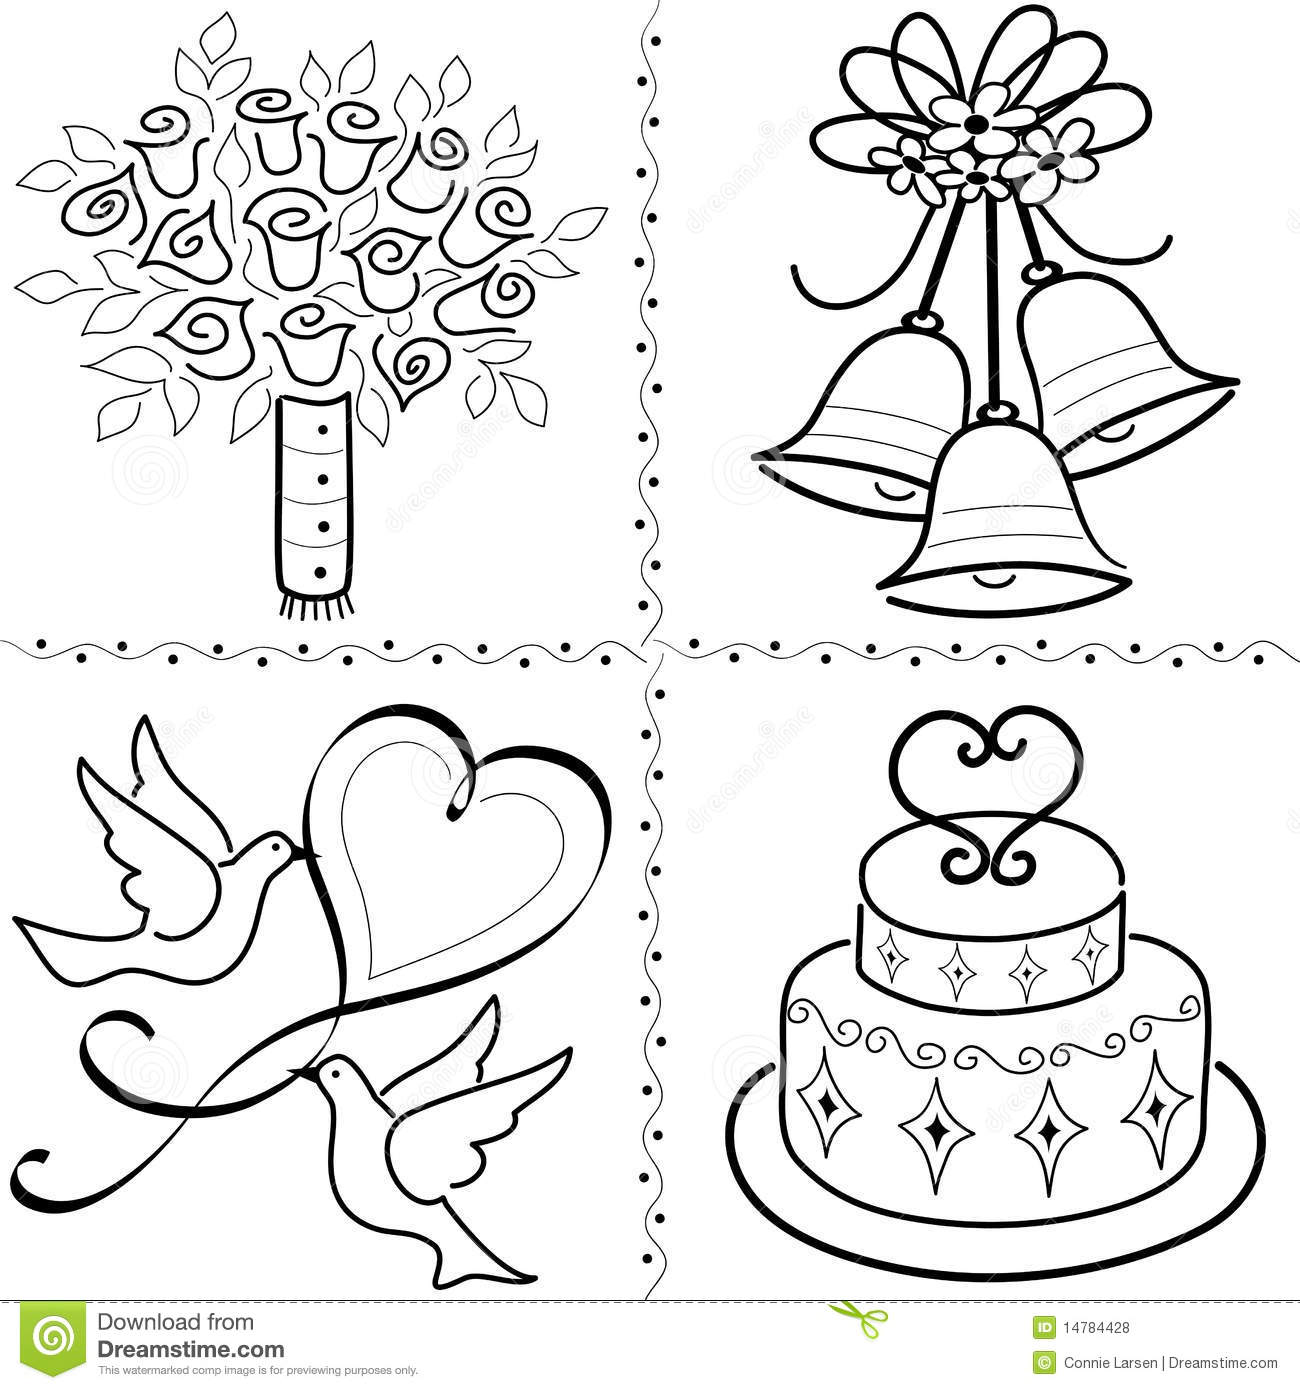 Wedding Clip Art Set/eps Royalty Free Stock Photos - Image: 14784428